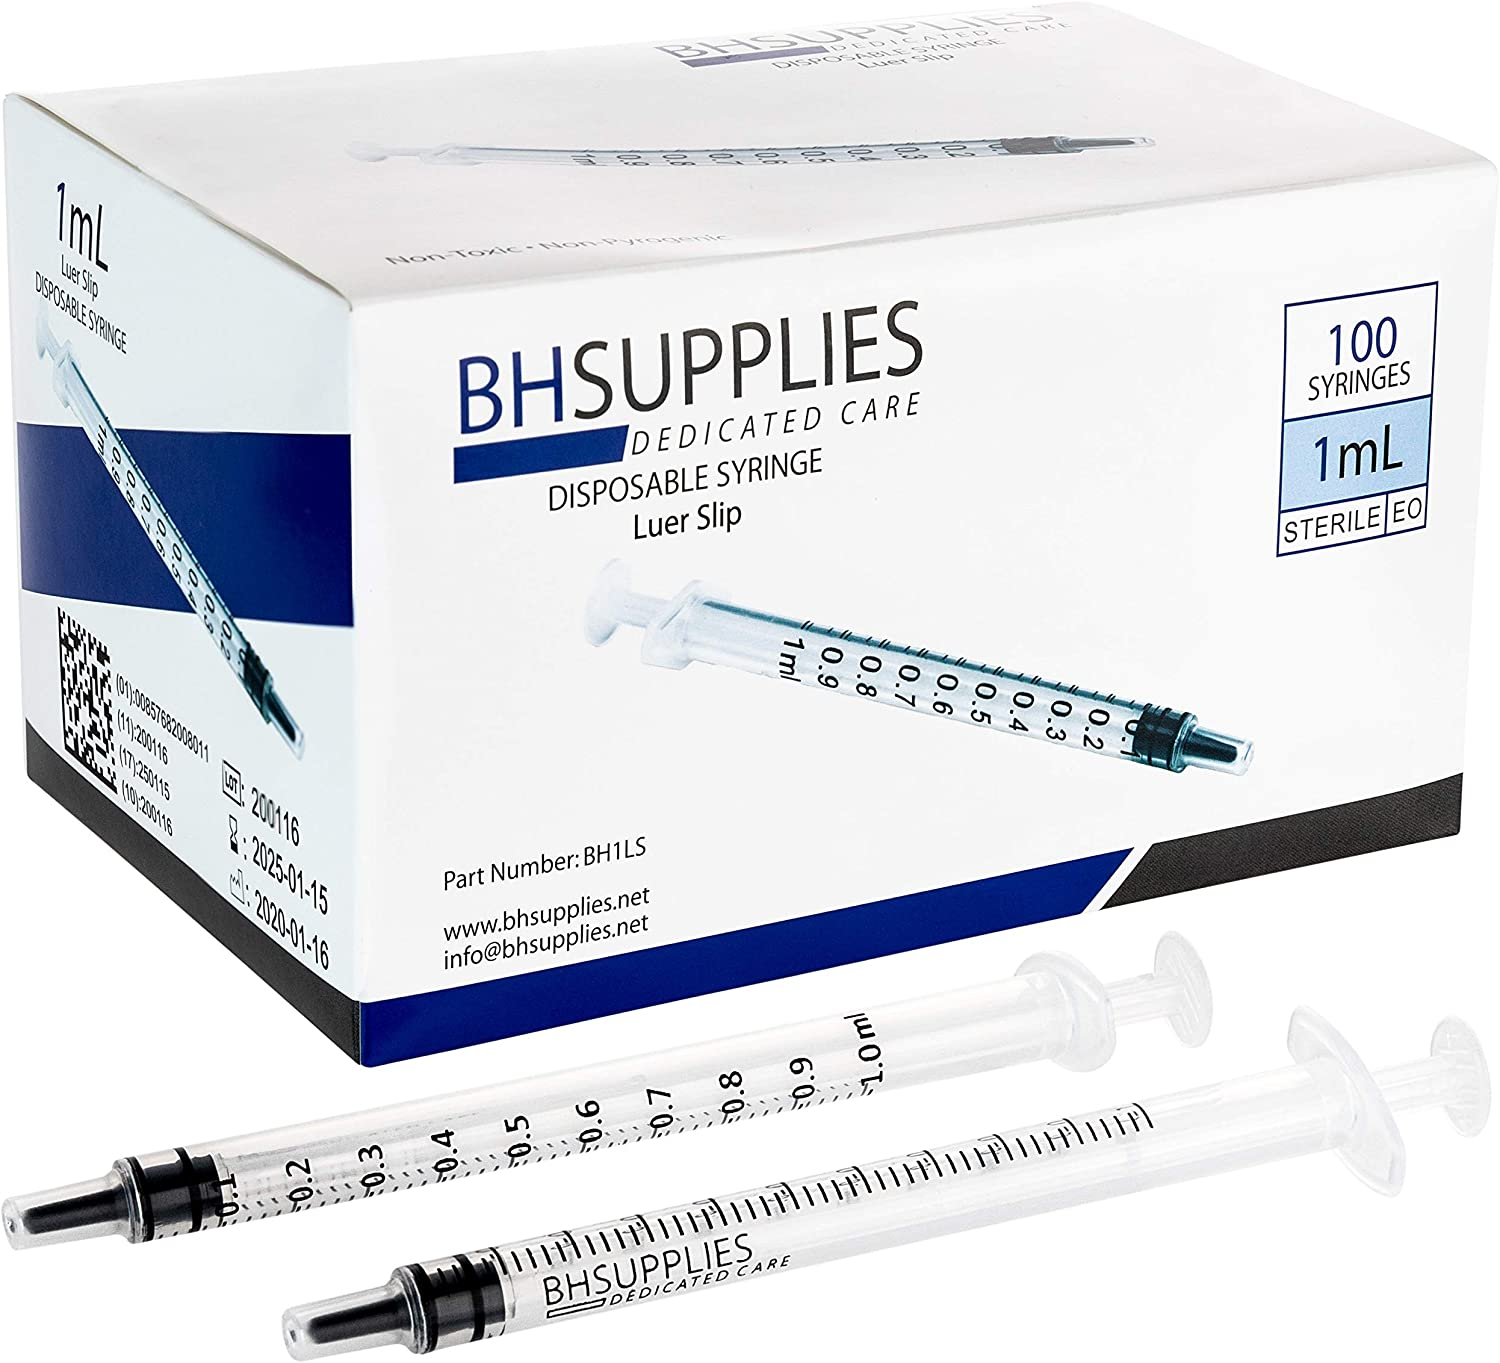 1ml Syringe Sterile with Luer Slip Tip - 100 Syringes by BH Supplies (No Needle) Individually Sealed: Health & Personal Care